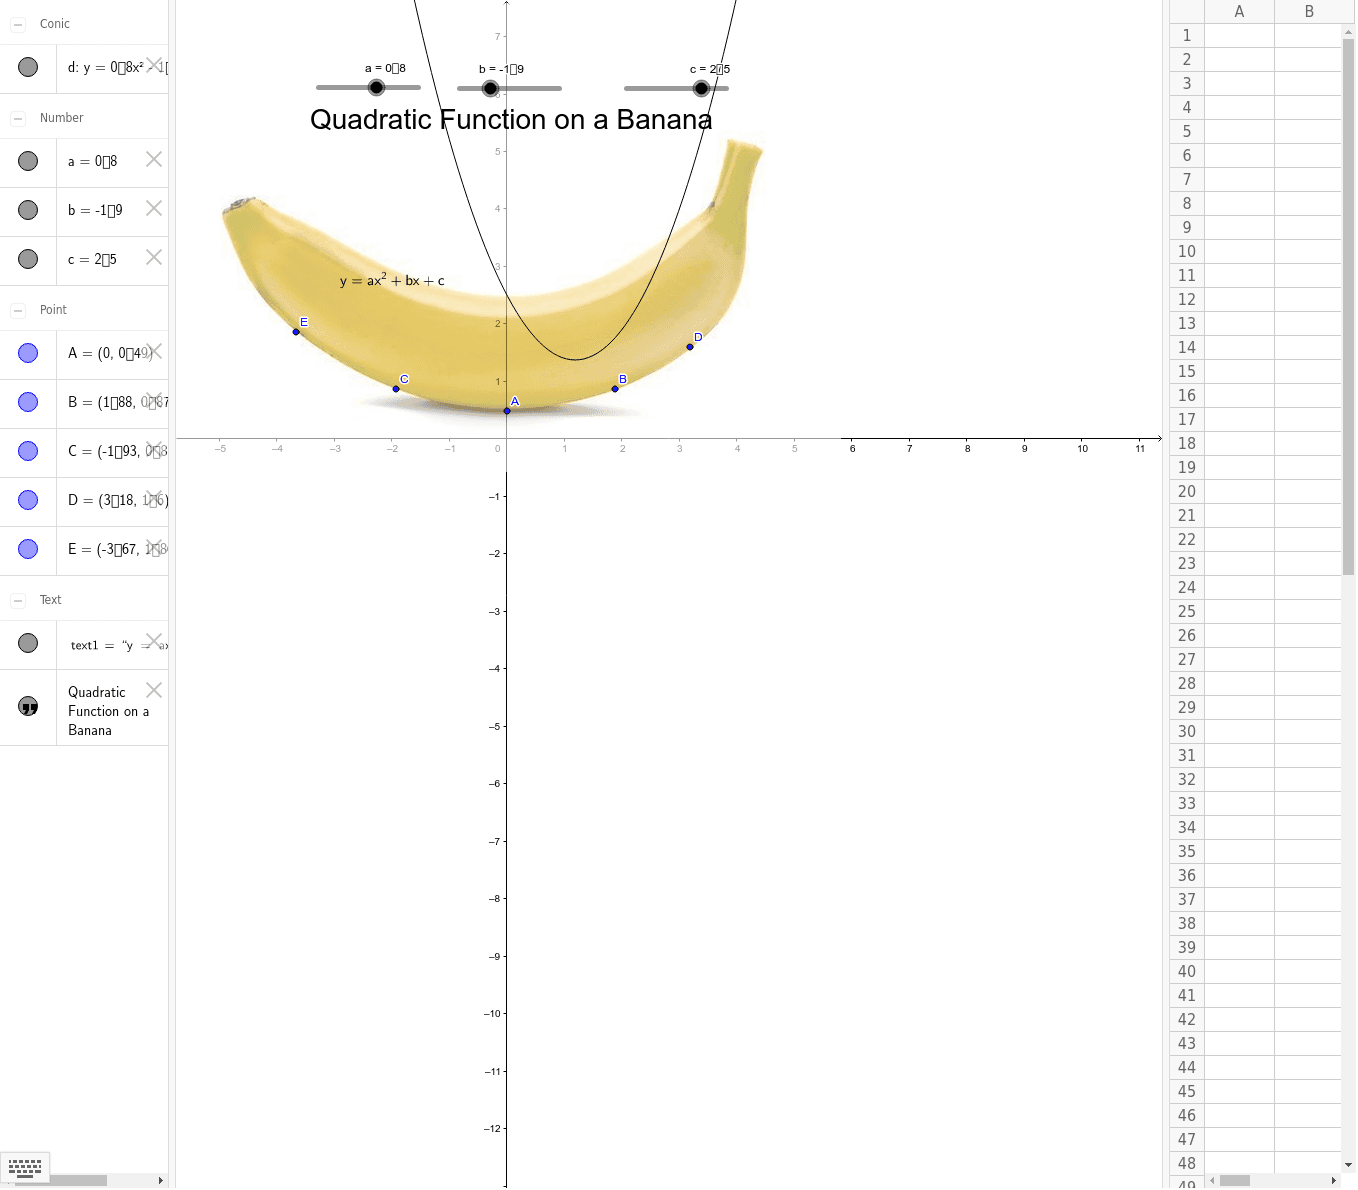 Adjust a, b & c with the sliders so that the parabolas fits the shape of the banana: it should go through A, B, C, D & E. Press Enter to start activity